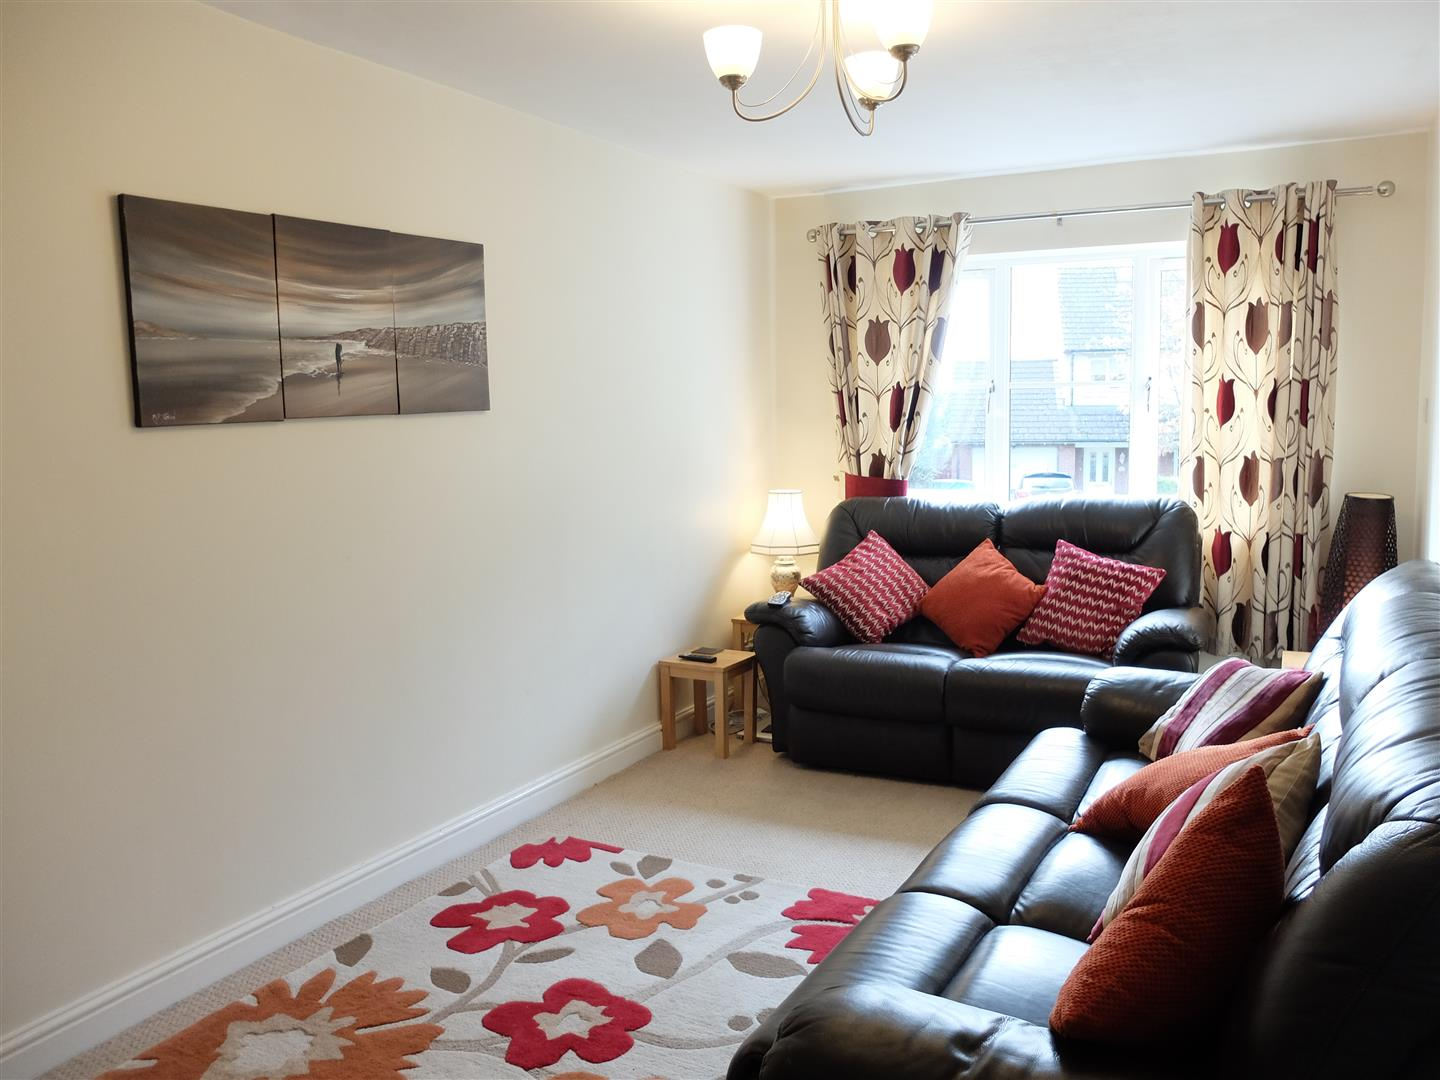 4 Bedrooms House - Detached On Sale 5 Alexandra Drive Carlisle